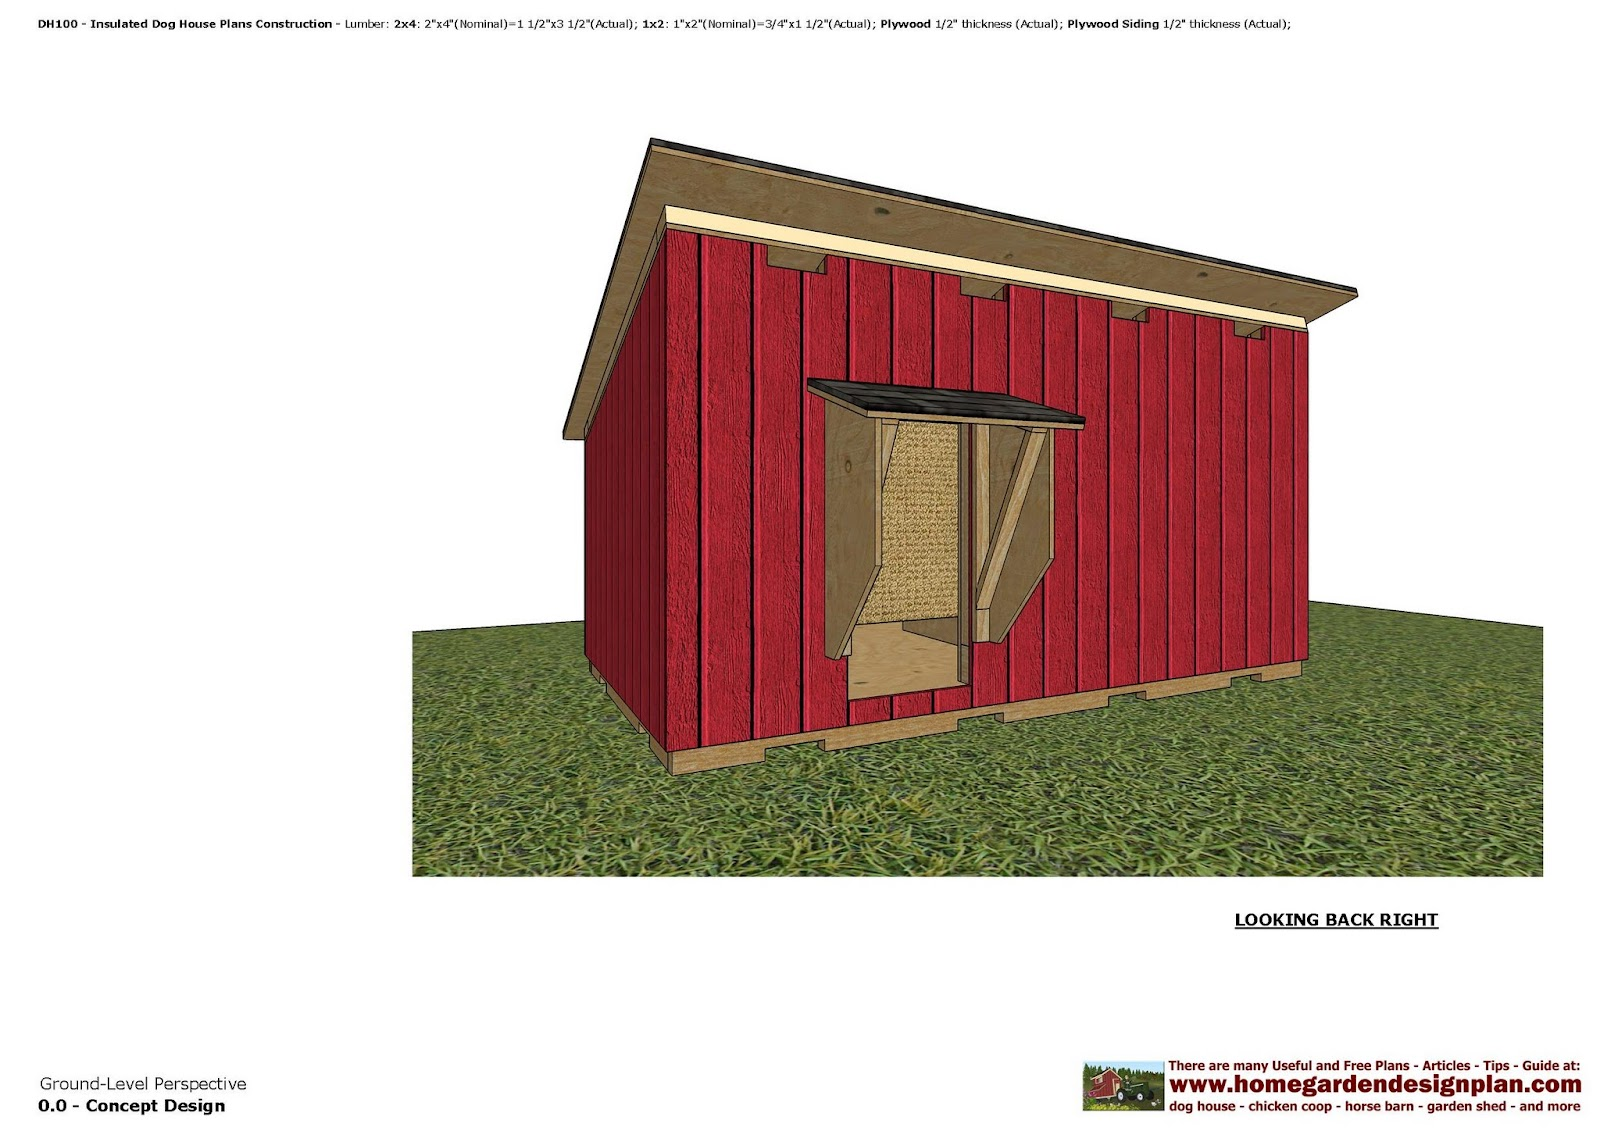 home garden plans: dh100 - insulated dog house plans - dog house